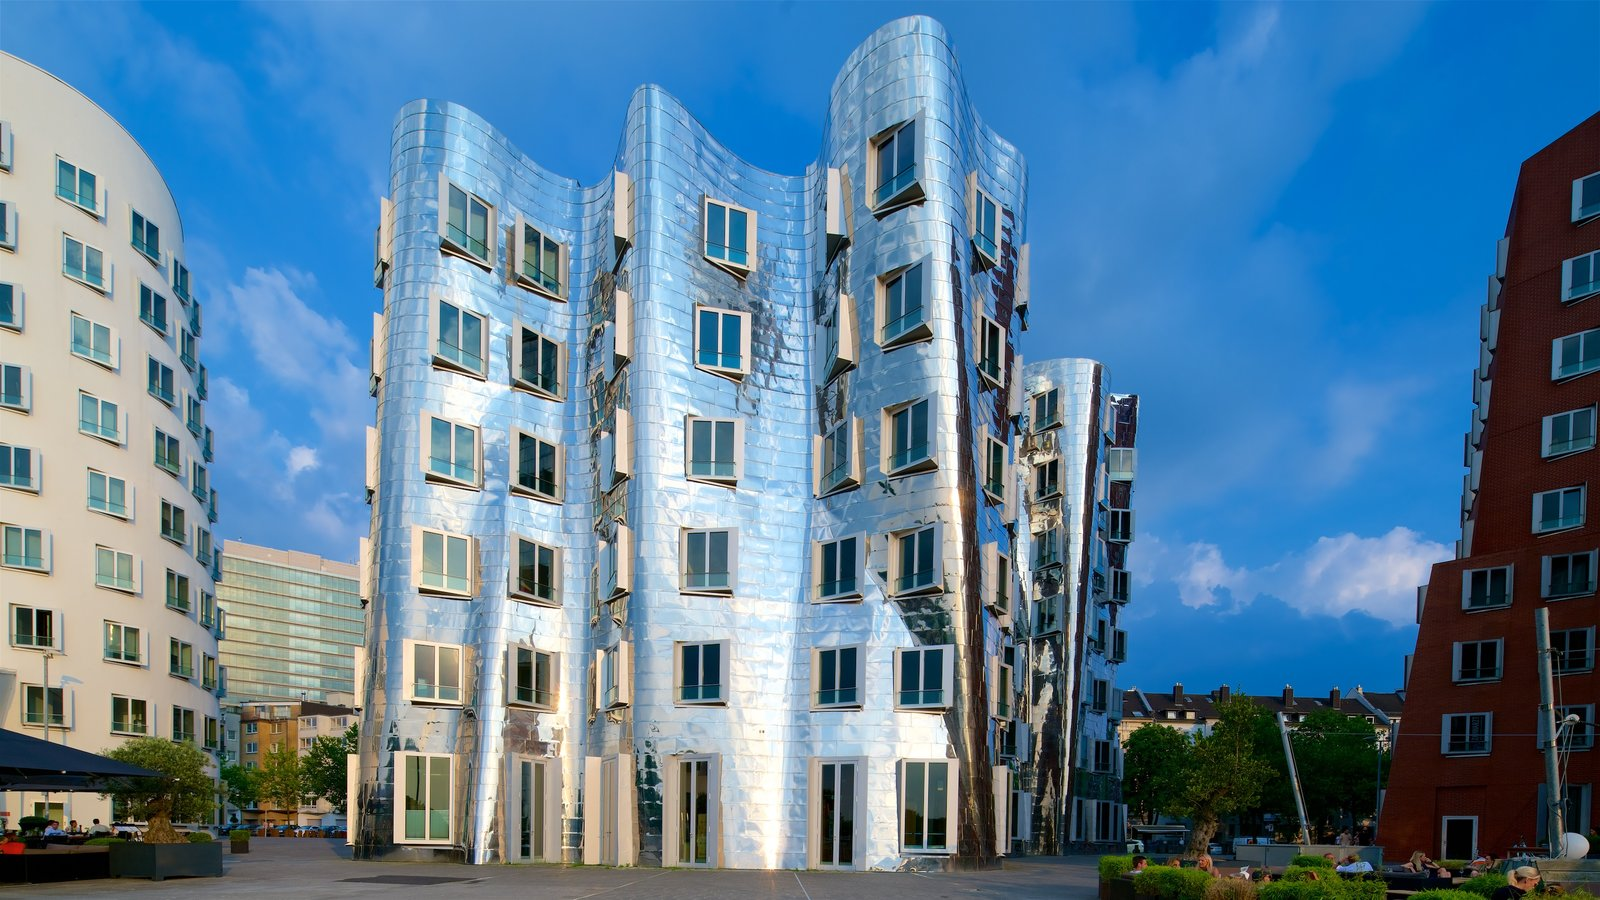 postmodern architecture gehry. Gehry Buildings Postmodern Architecture